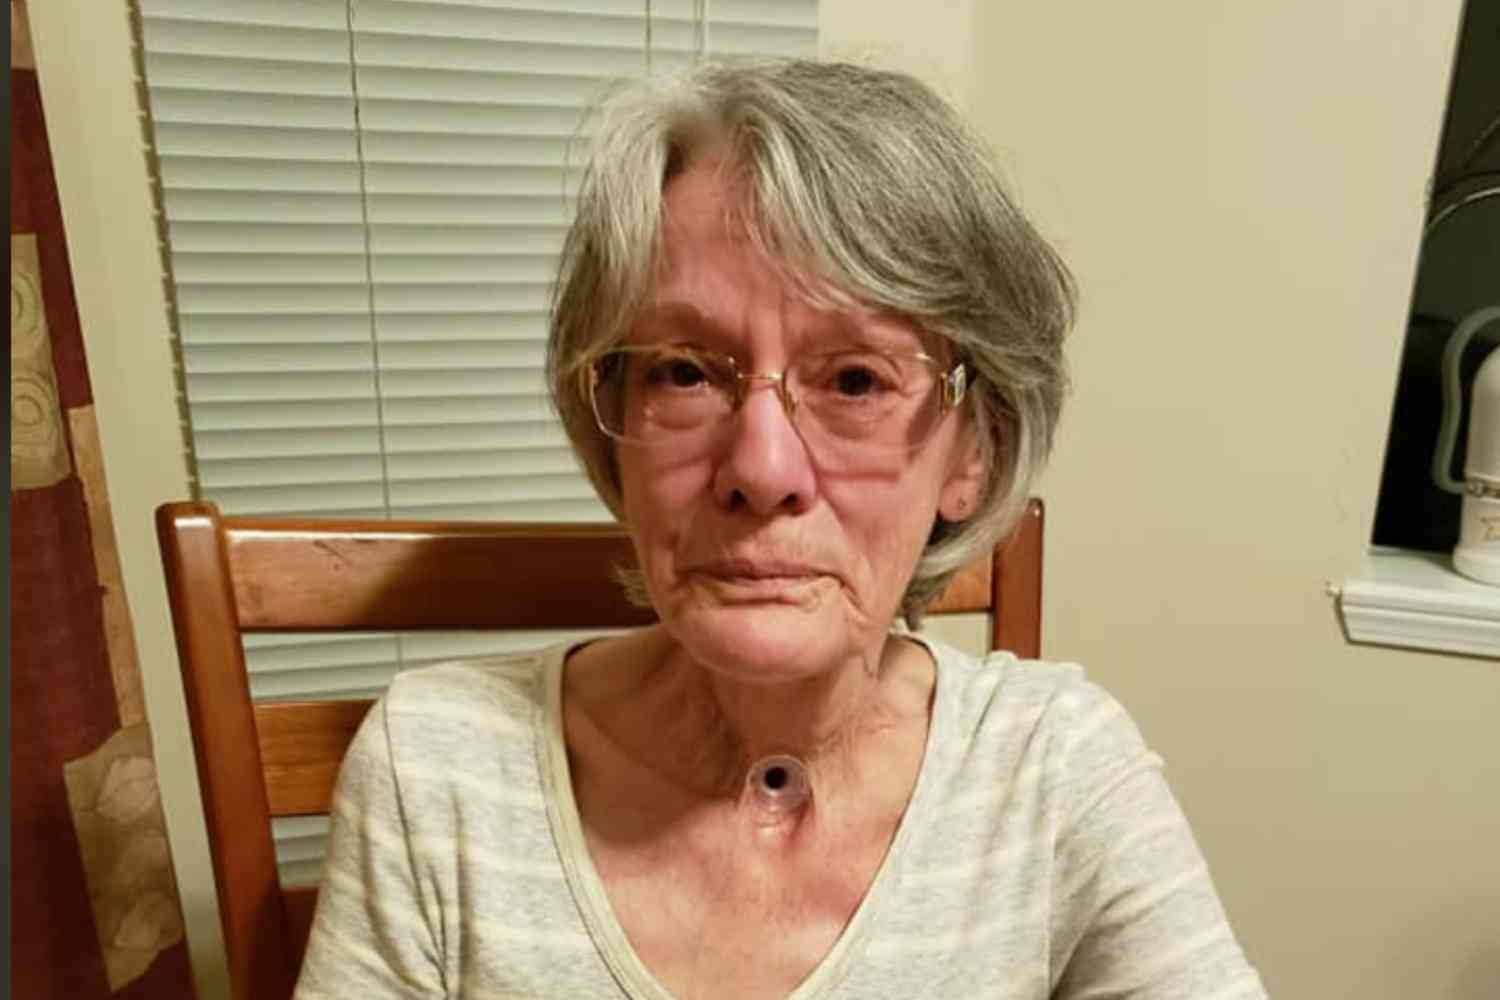 The 'Mask Inquisition' continues to get worse. Leftists target elderly cancer survivor banned from bingo for not covering breathing hole in neck (notthebee.com)